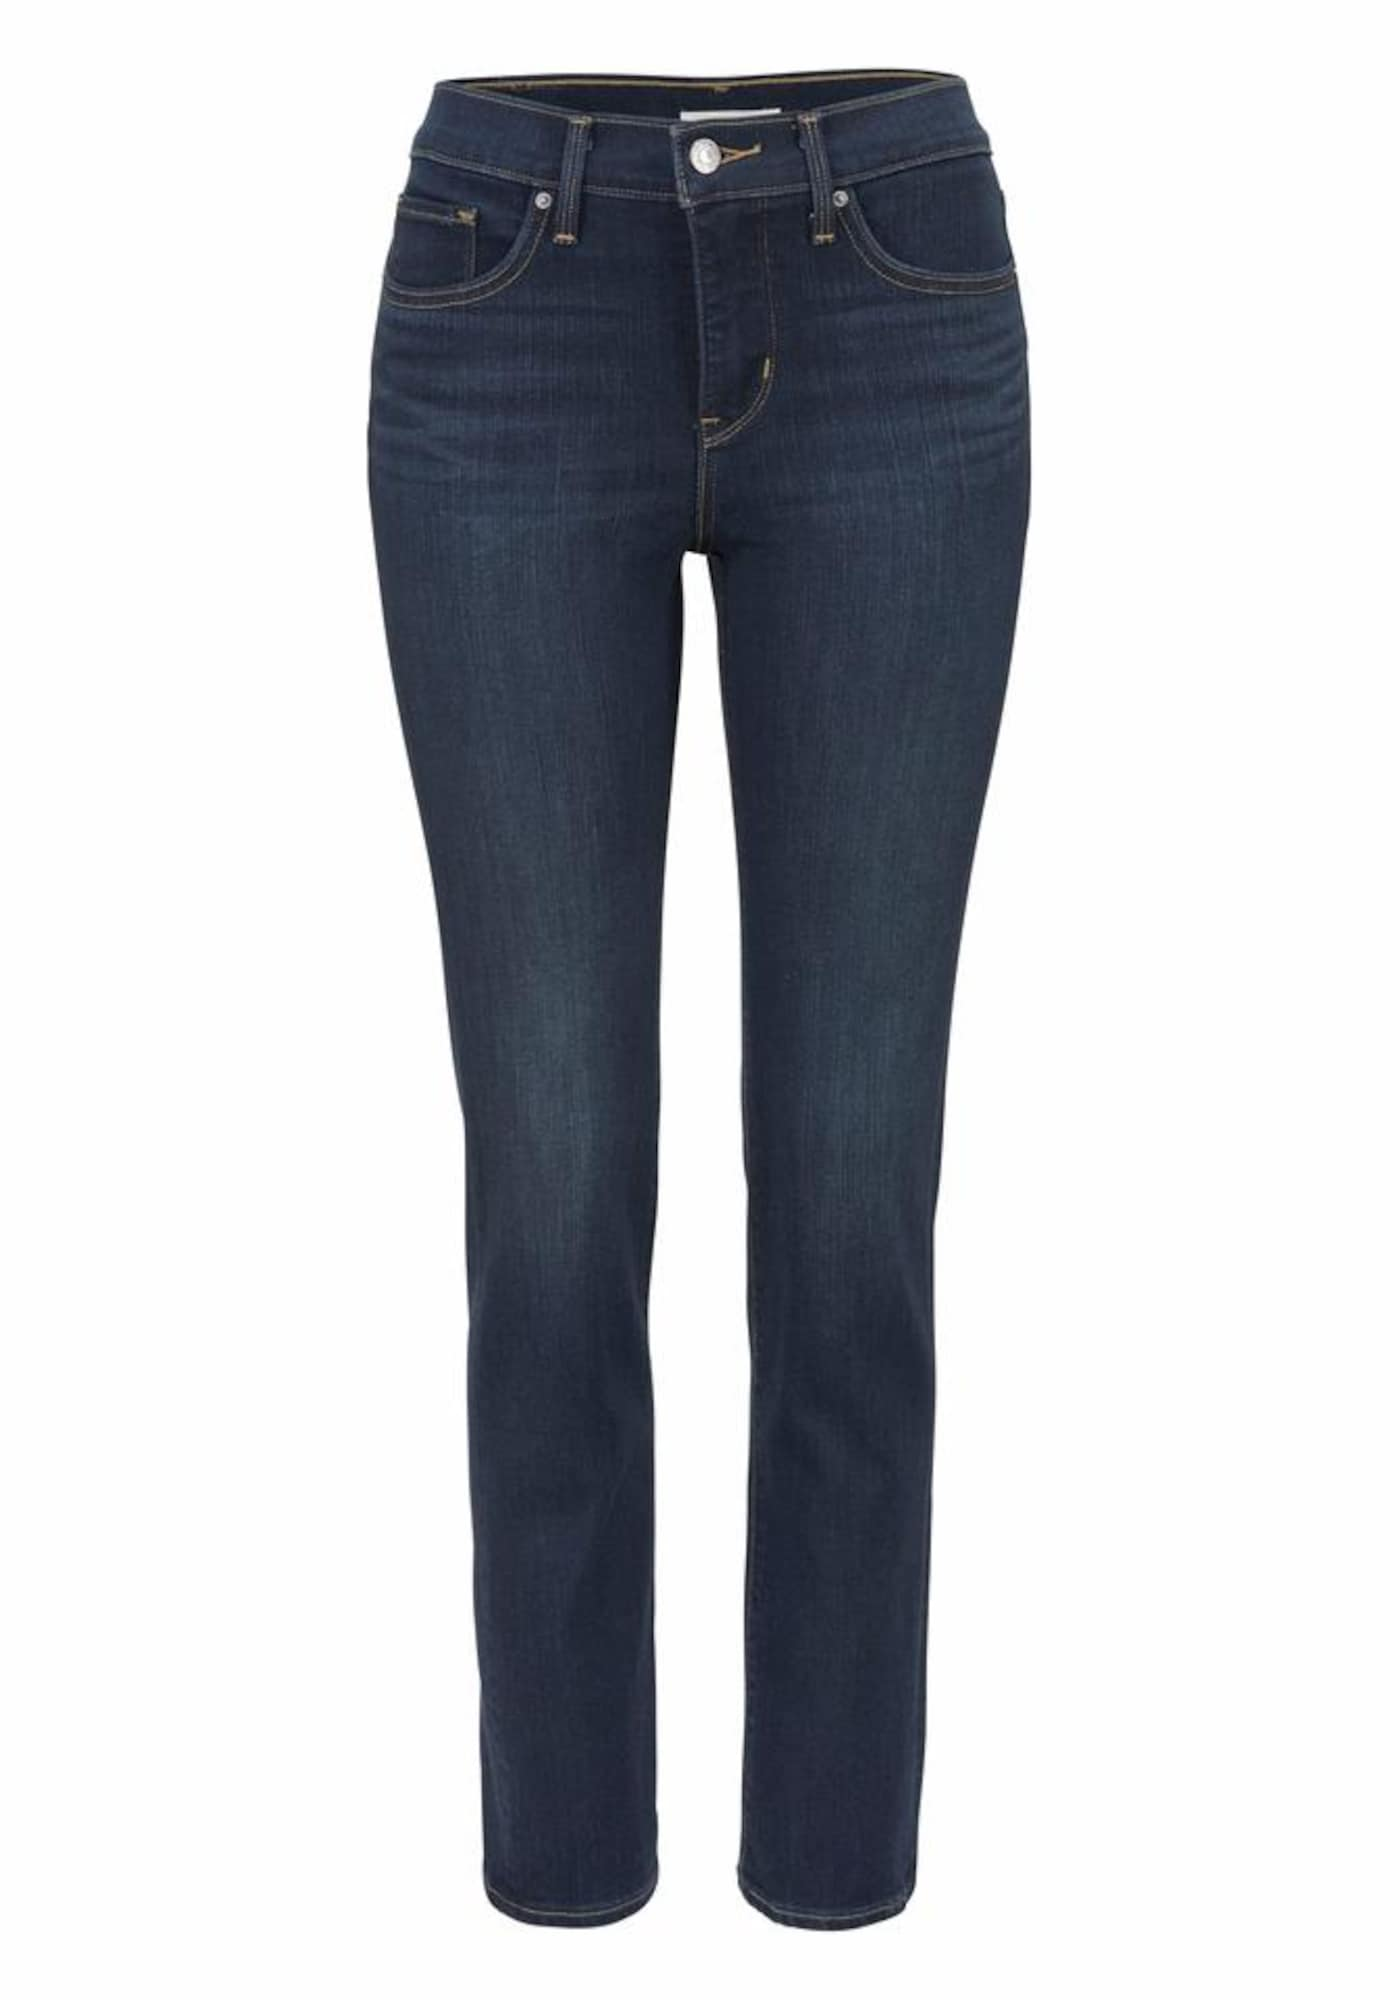 LEVI'S Dames Jeans Shaping Slim 312 donkerblauw